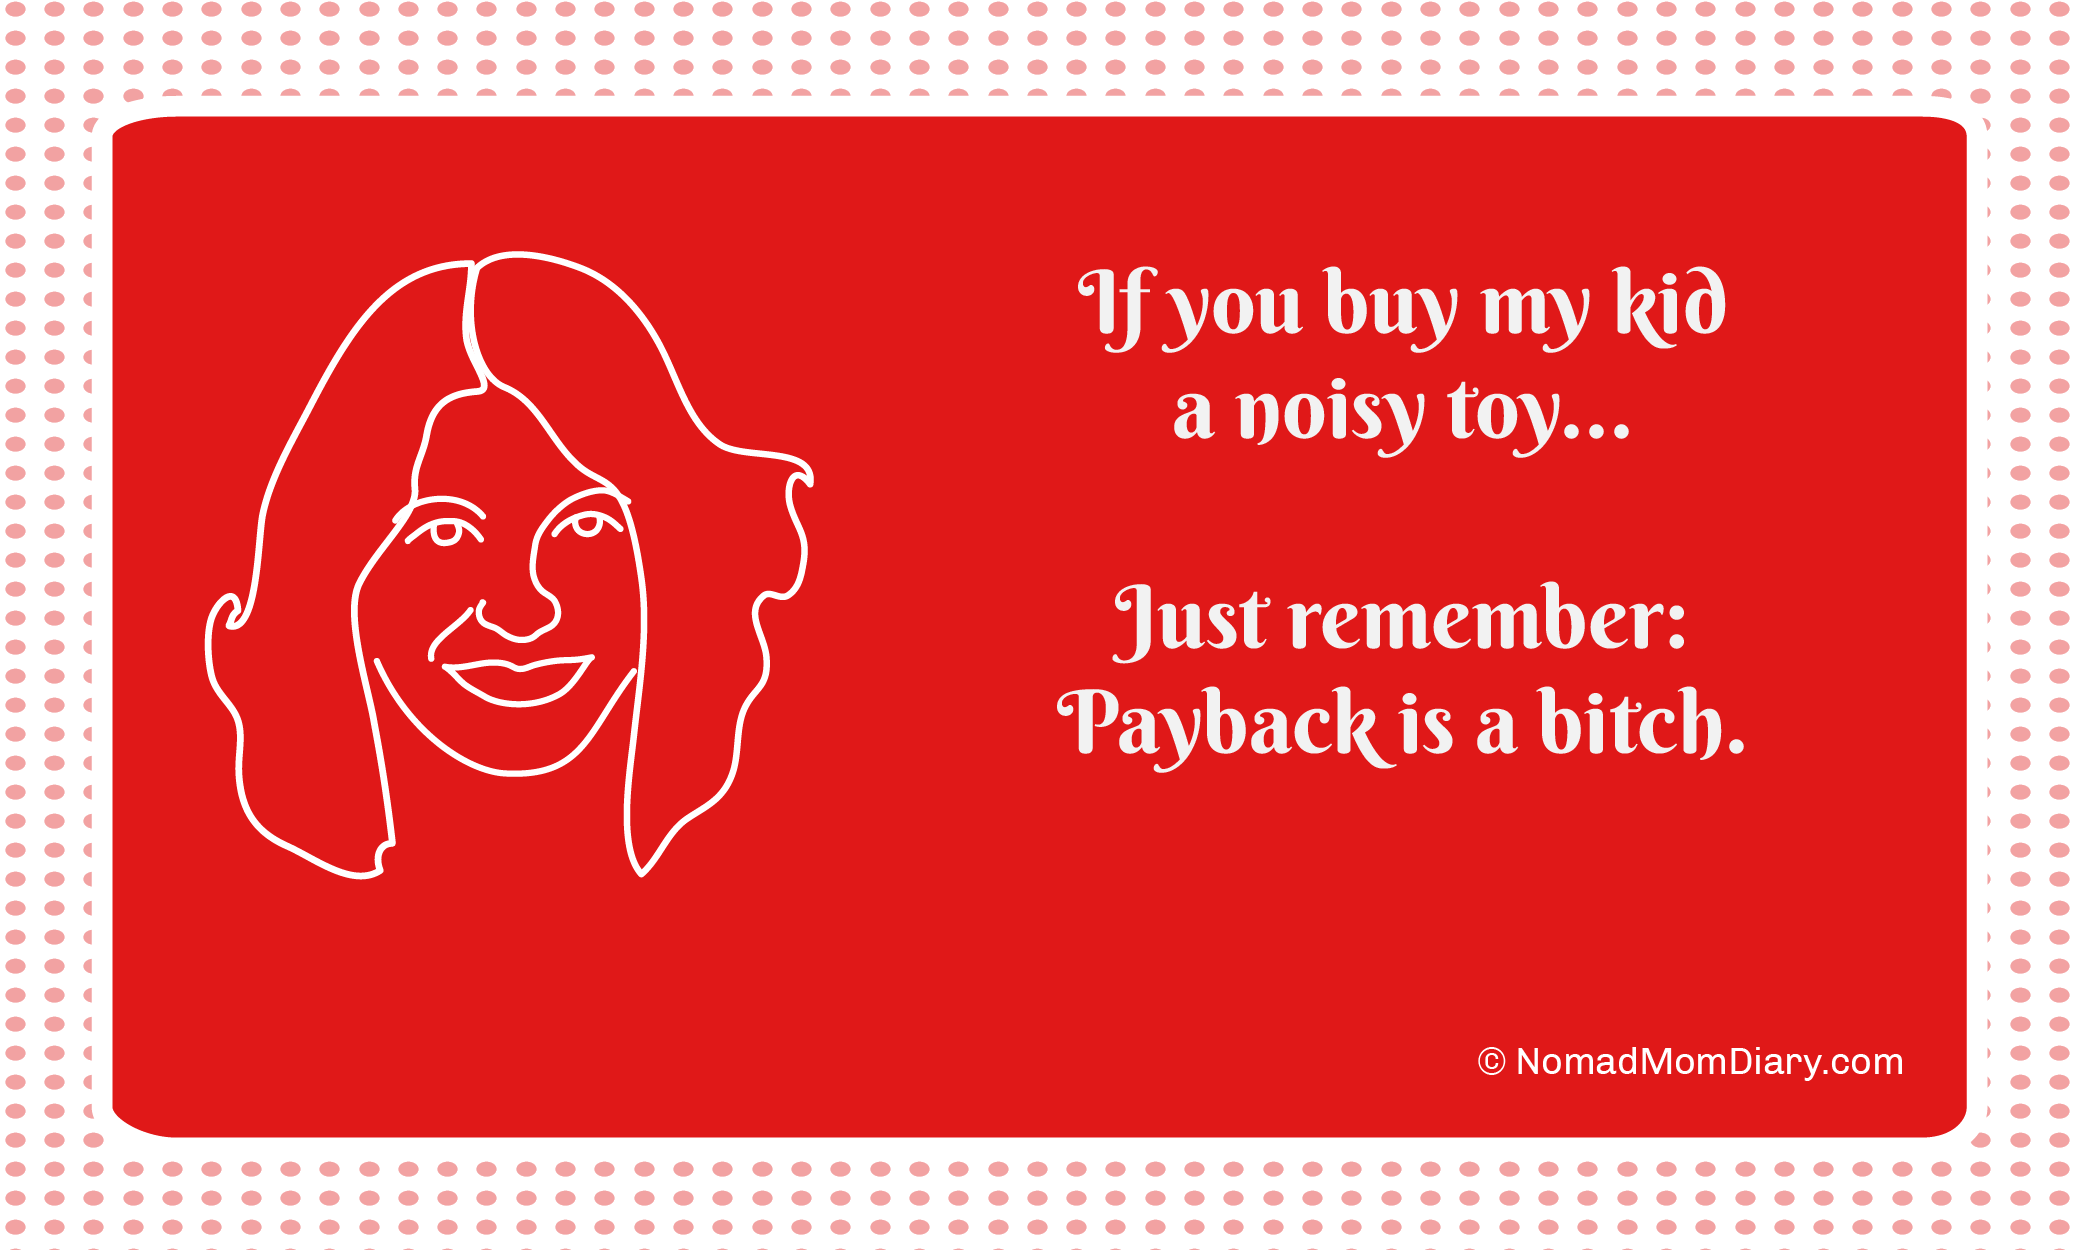 If you buy my kids a noisy toy, just remember: payback is a bitch